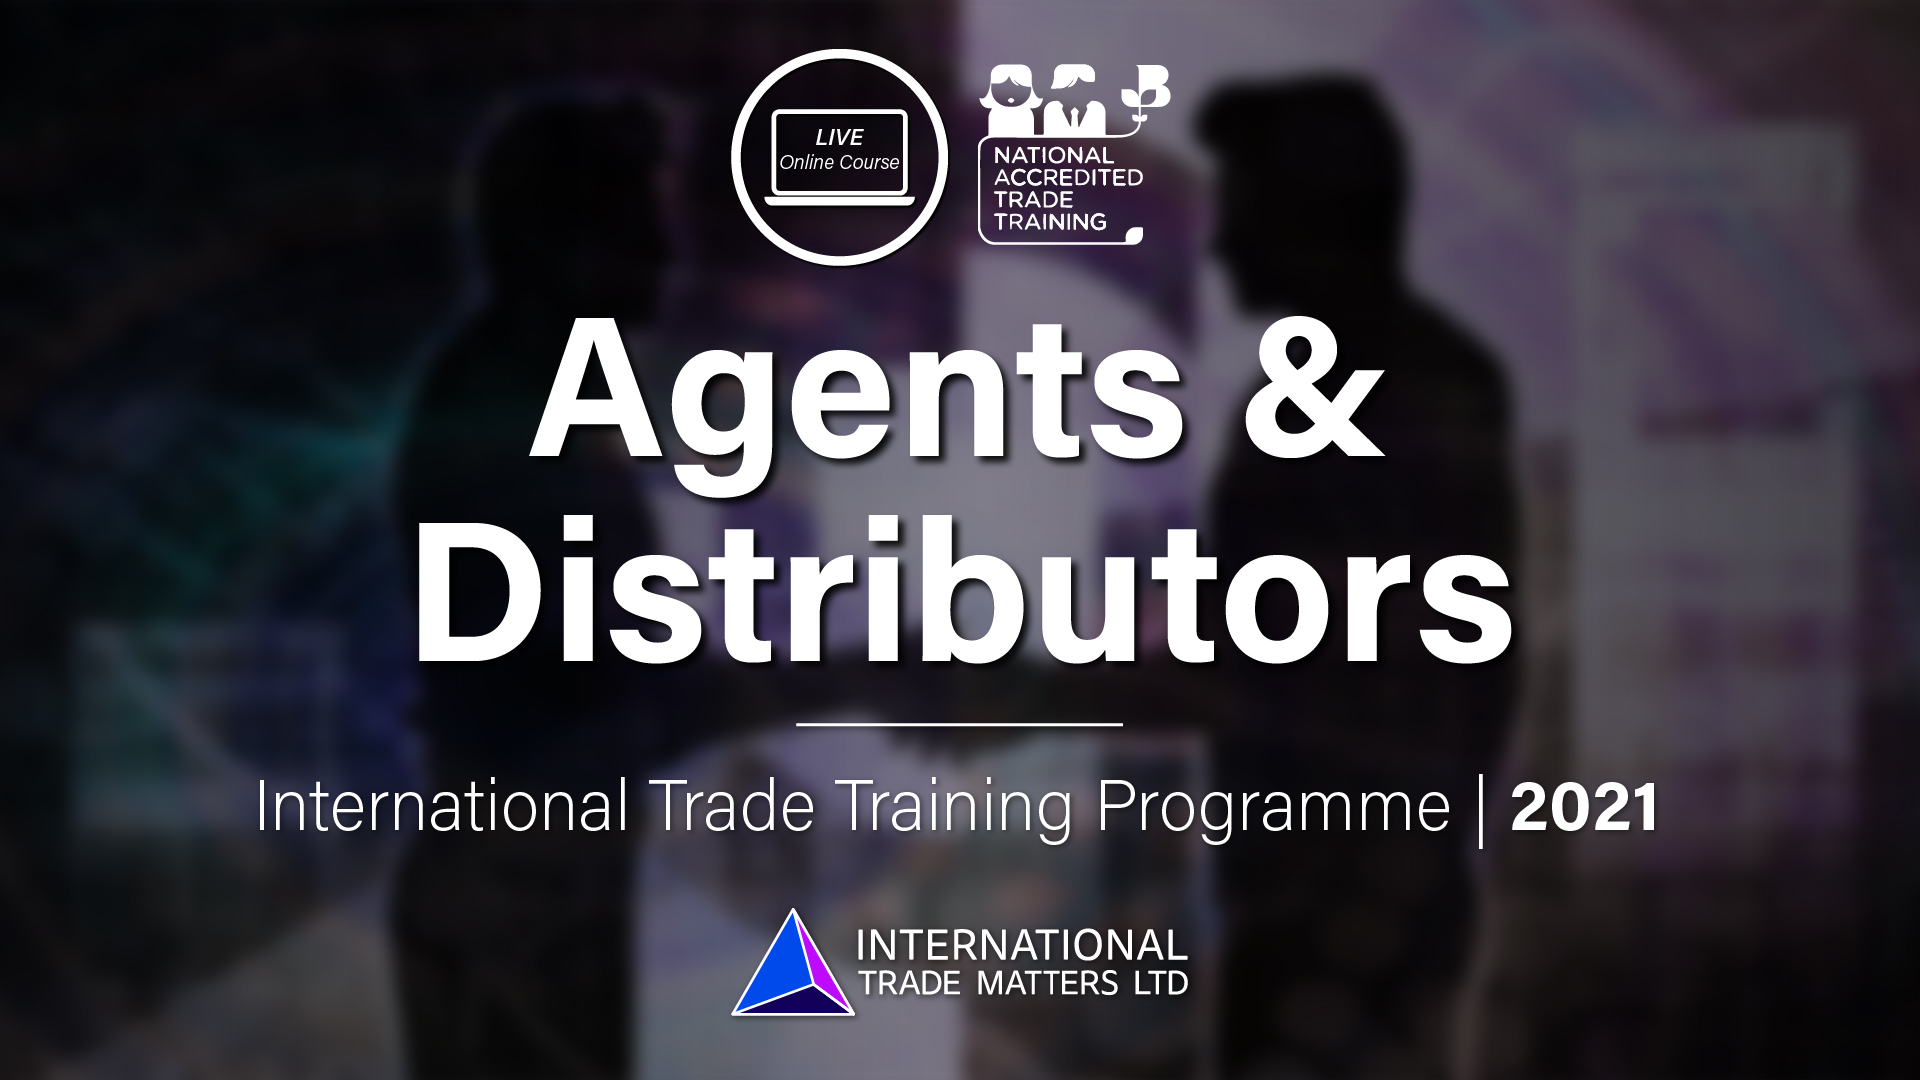 Agents and Distributors - An Online Course